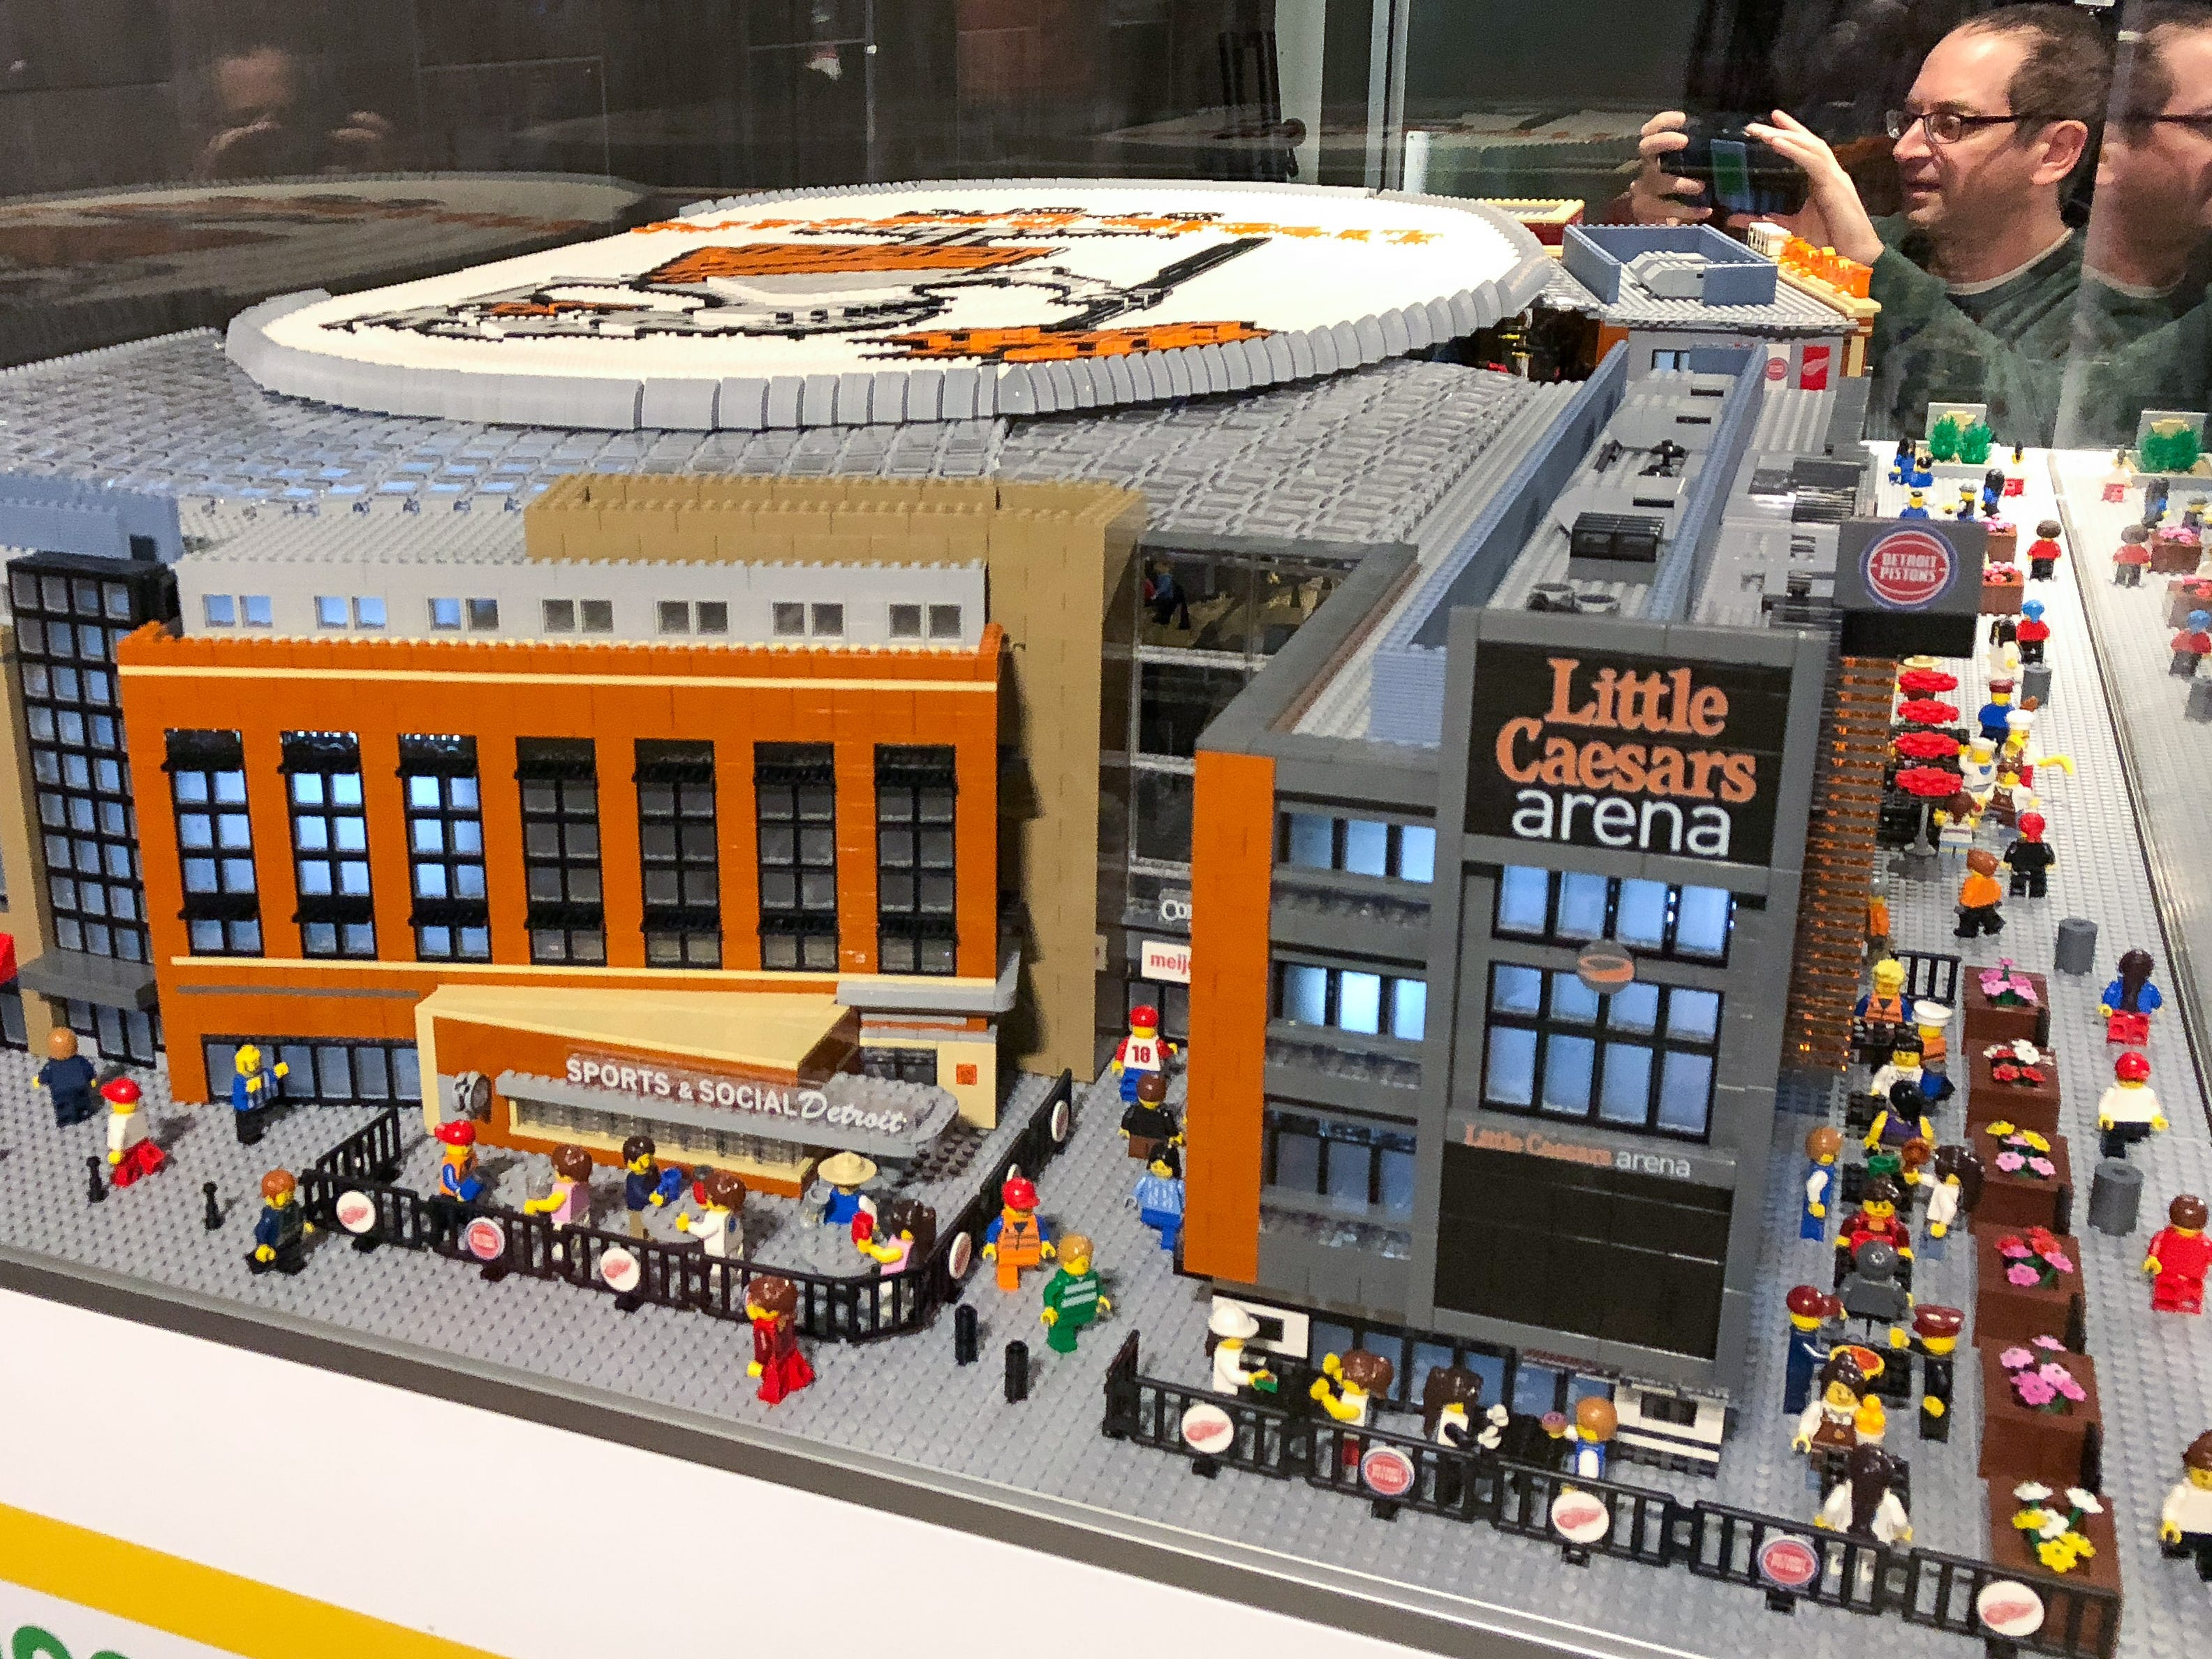 LEGOLAND of Auburn Hills unveiled its 6-foot-long, 30-000-piece model of Little Caesars Arena on Monday night between the first and second periods of the Red Wings-Hurricanes game.